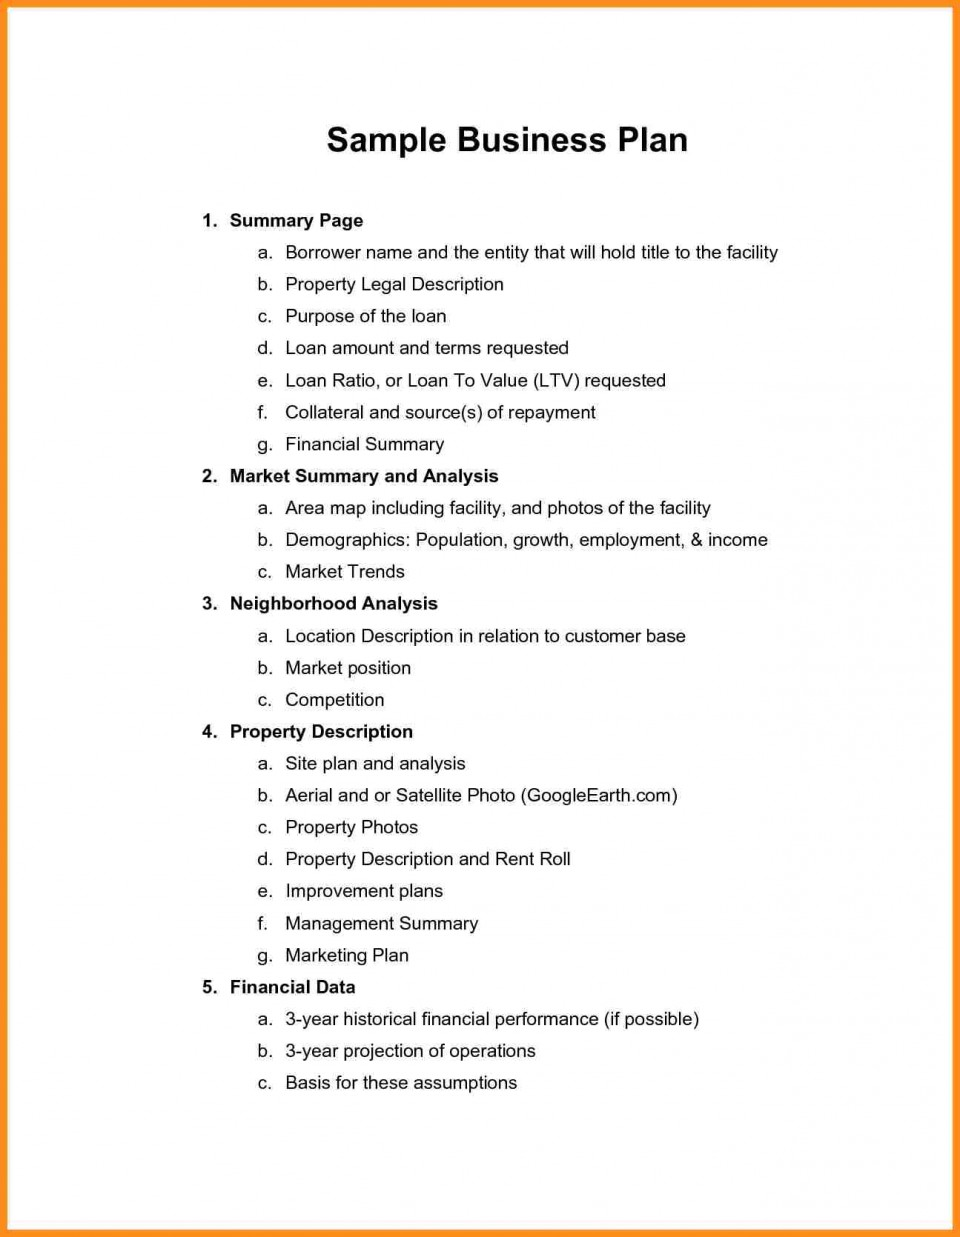 021 Research Paper Parts Of And Its Definition Pdf Business Plan Examples Free Resume Sba Template W Introduction Presentation Explained Executive Summary Staggering A 960